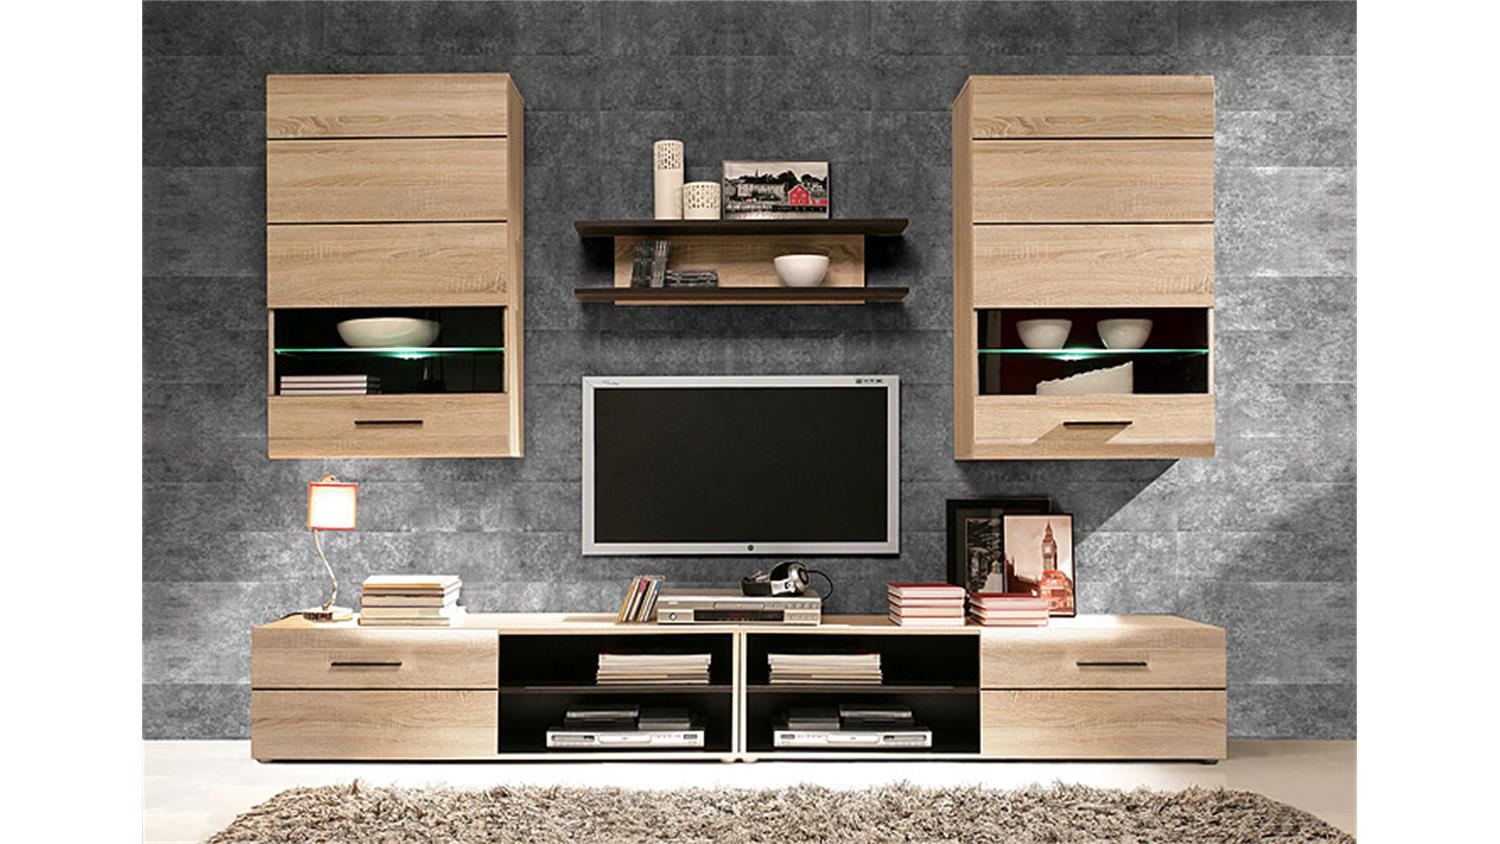 wohnwand 2 combino sonoma denver eiche wenge inkl led. Black Bedroom Furniture Sets. Home Design Ideas